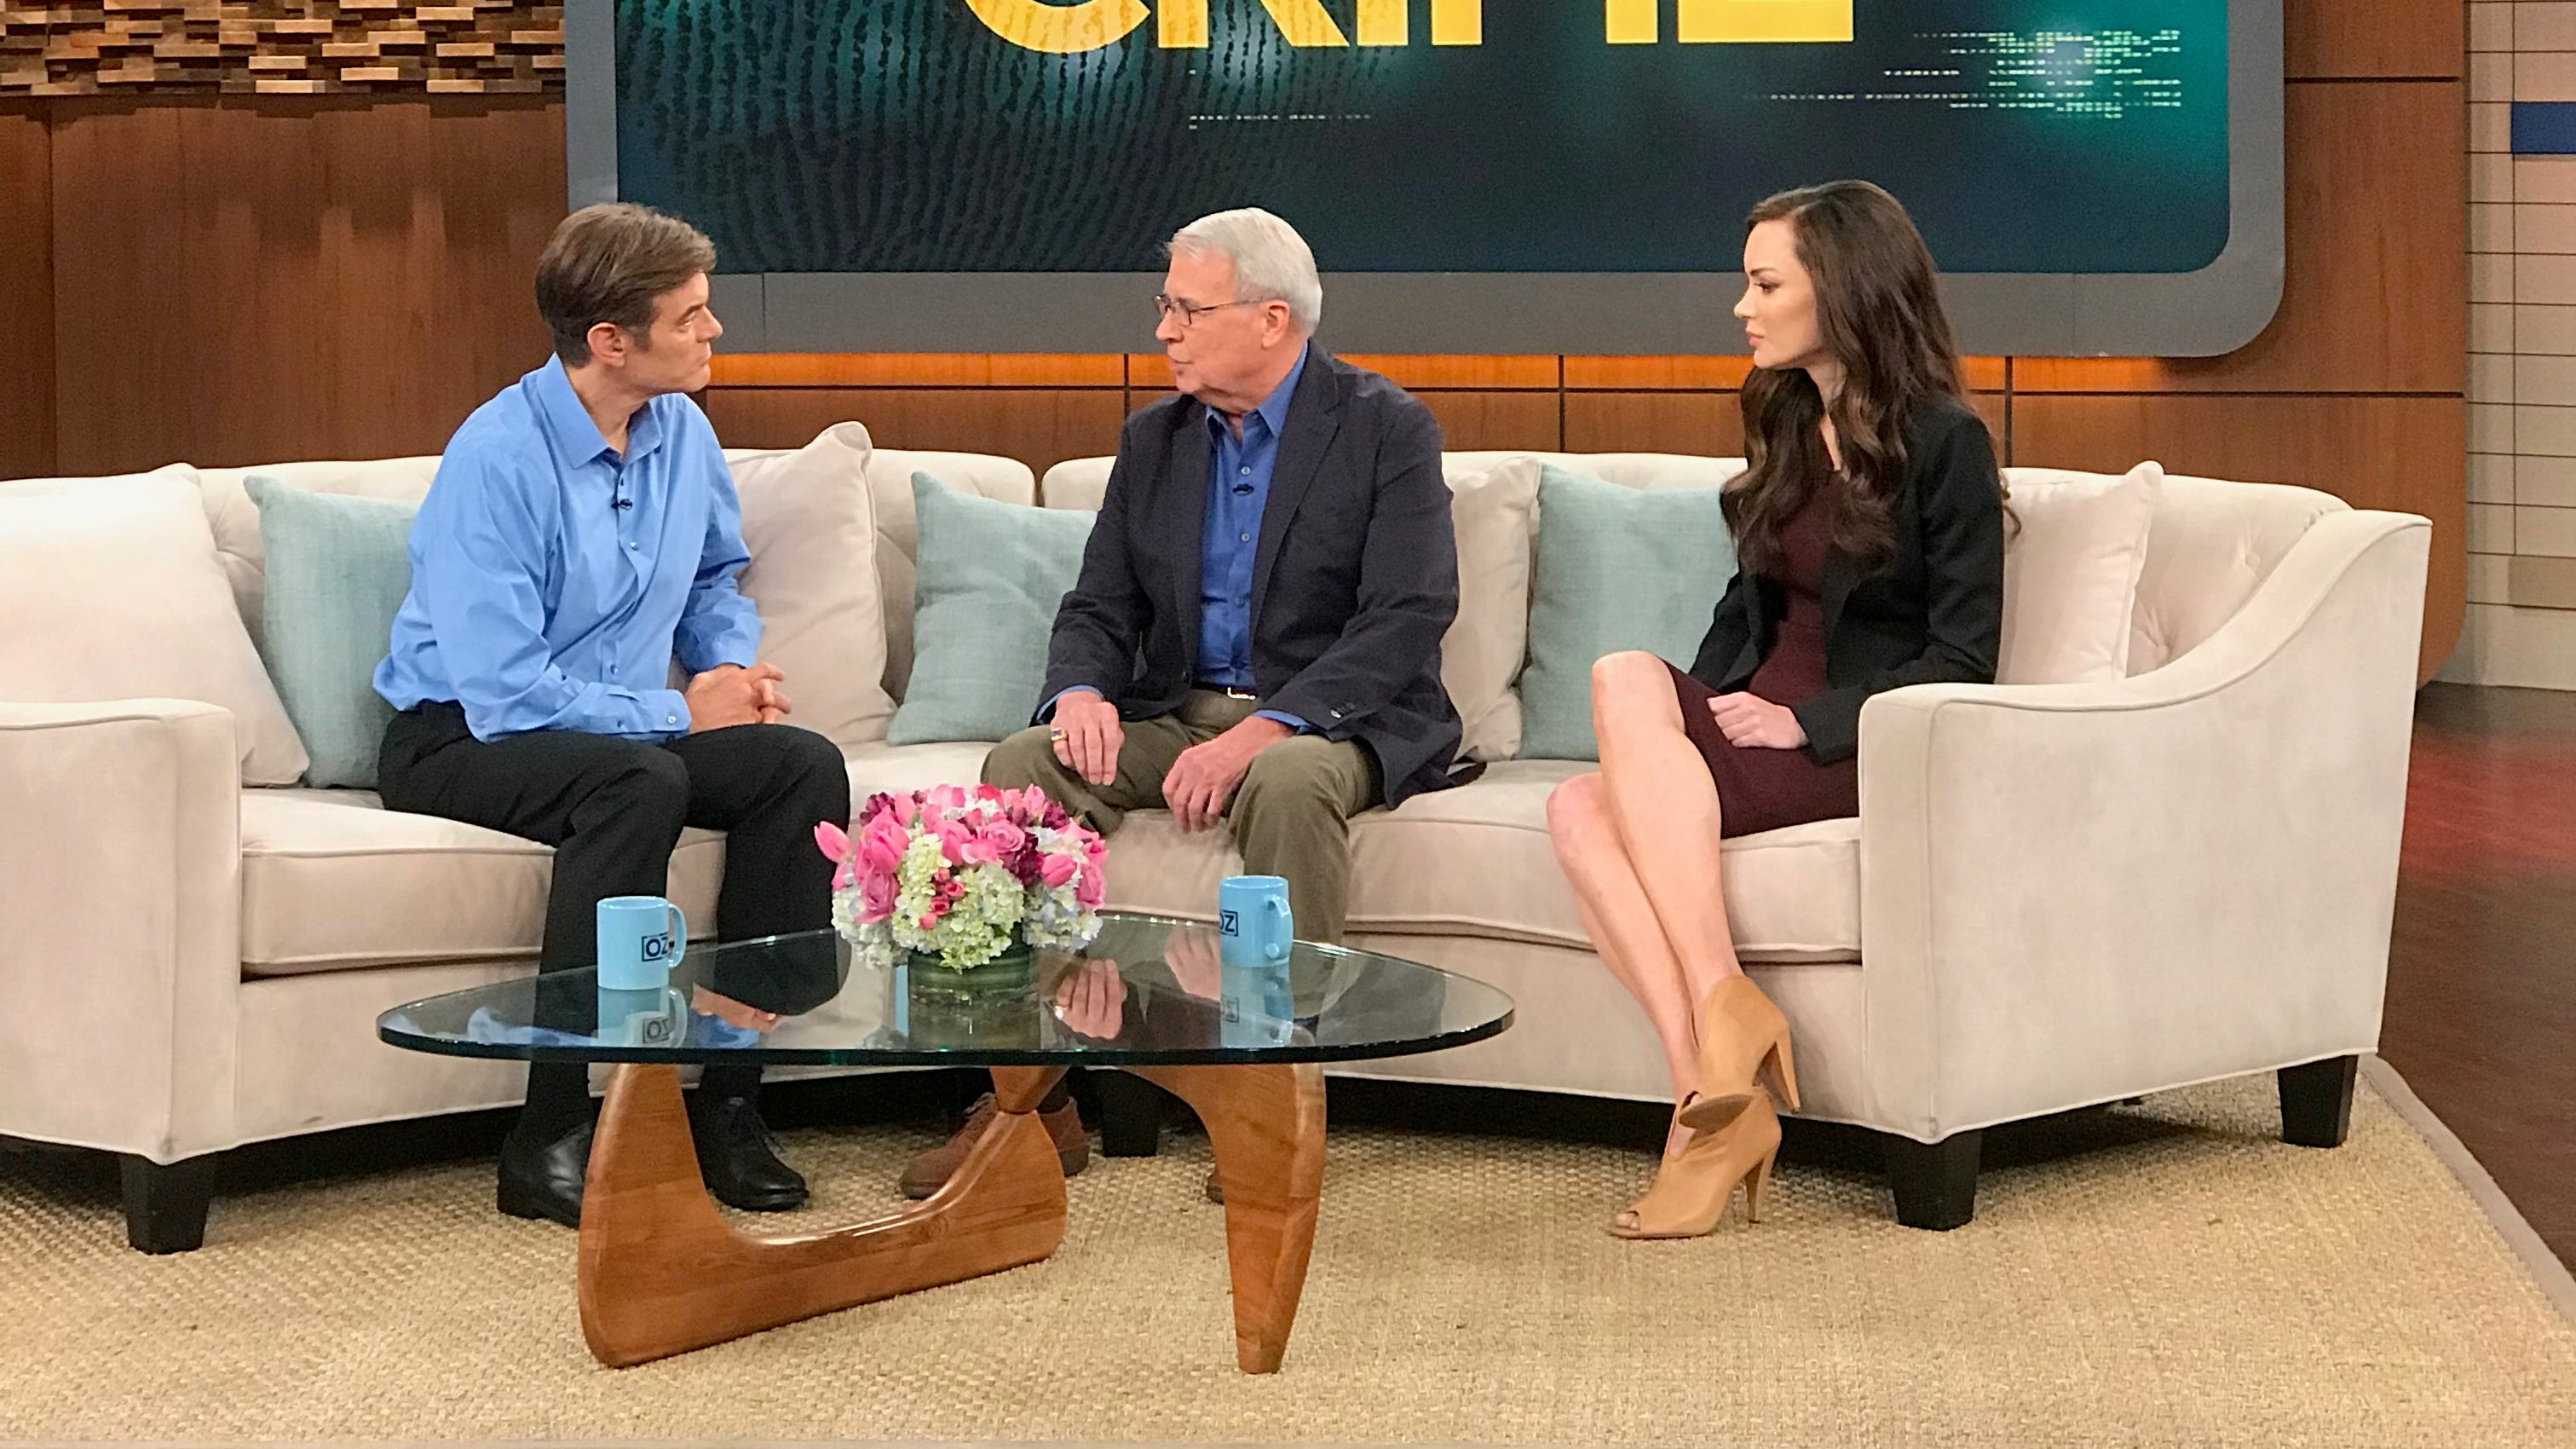 """Local dentist Dr. Larry Gould (center) talks with Dr. Mehmet Oz (left) about the unsolved murder of Gould's daughter, Rebekah, in this photograph from the set of """"The Dr. Oz Show."""" The episode was filmed in New York City last week and also included private investigator and writer Catherine Townsend (right), who is hosting a podcast focusing on the unsolved case."""